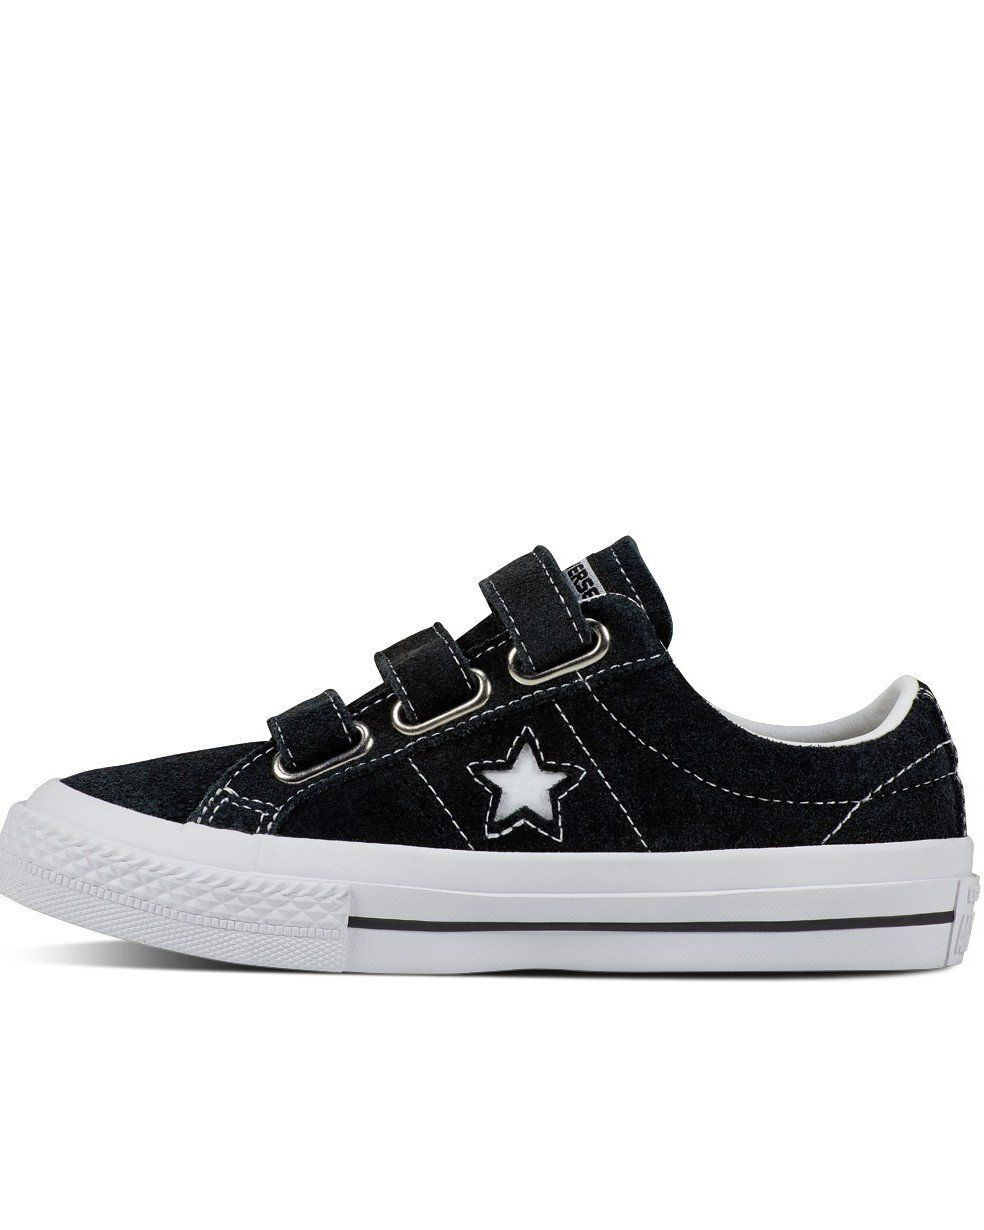 d2188bd98f6 Converse Chuck Taylor One Star 3V Suede Low Top has three velcro straps.  Street style